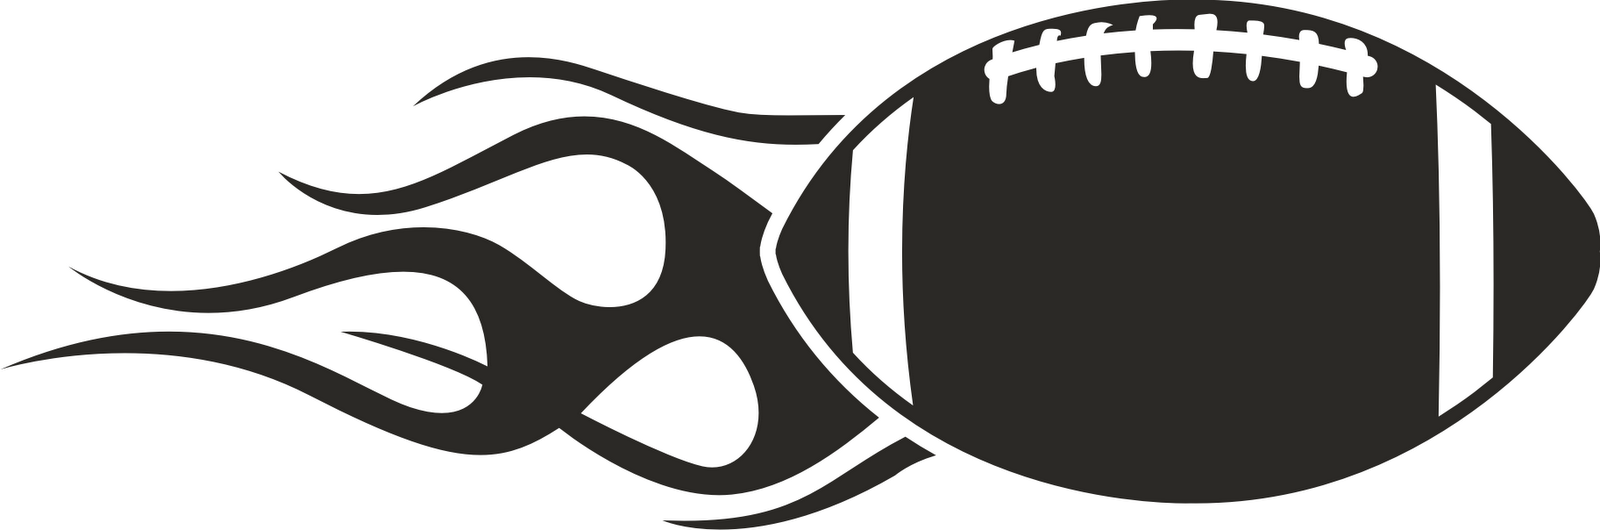 1600x530 Free Football Black And White Clipart Image